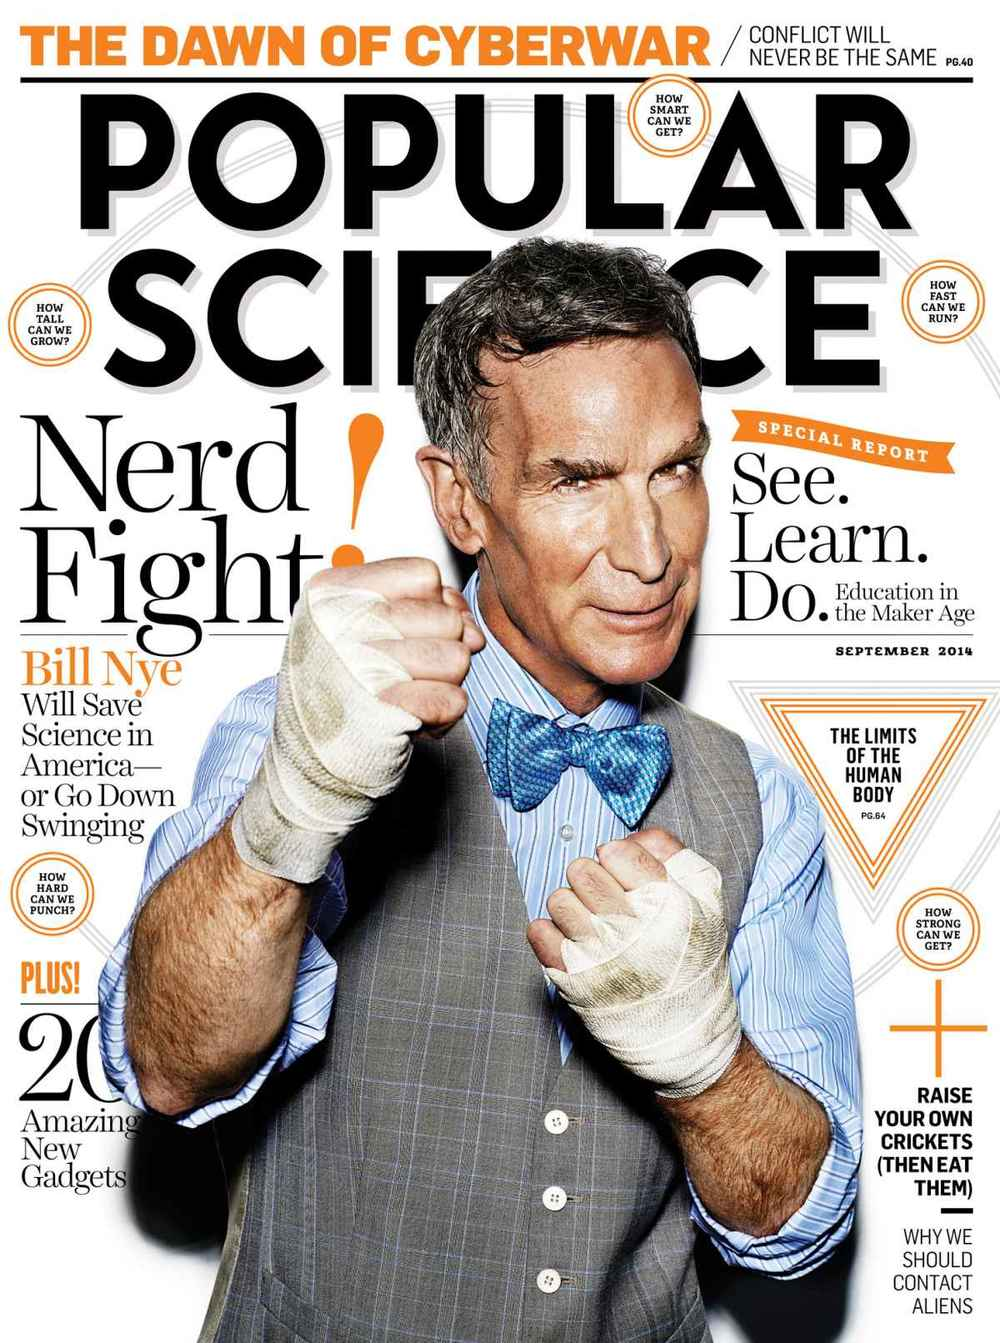 popular-science-september-2014-bill-nye.jpg